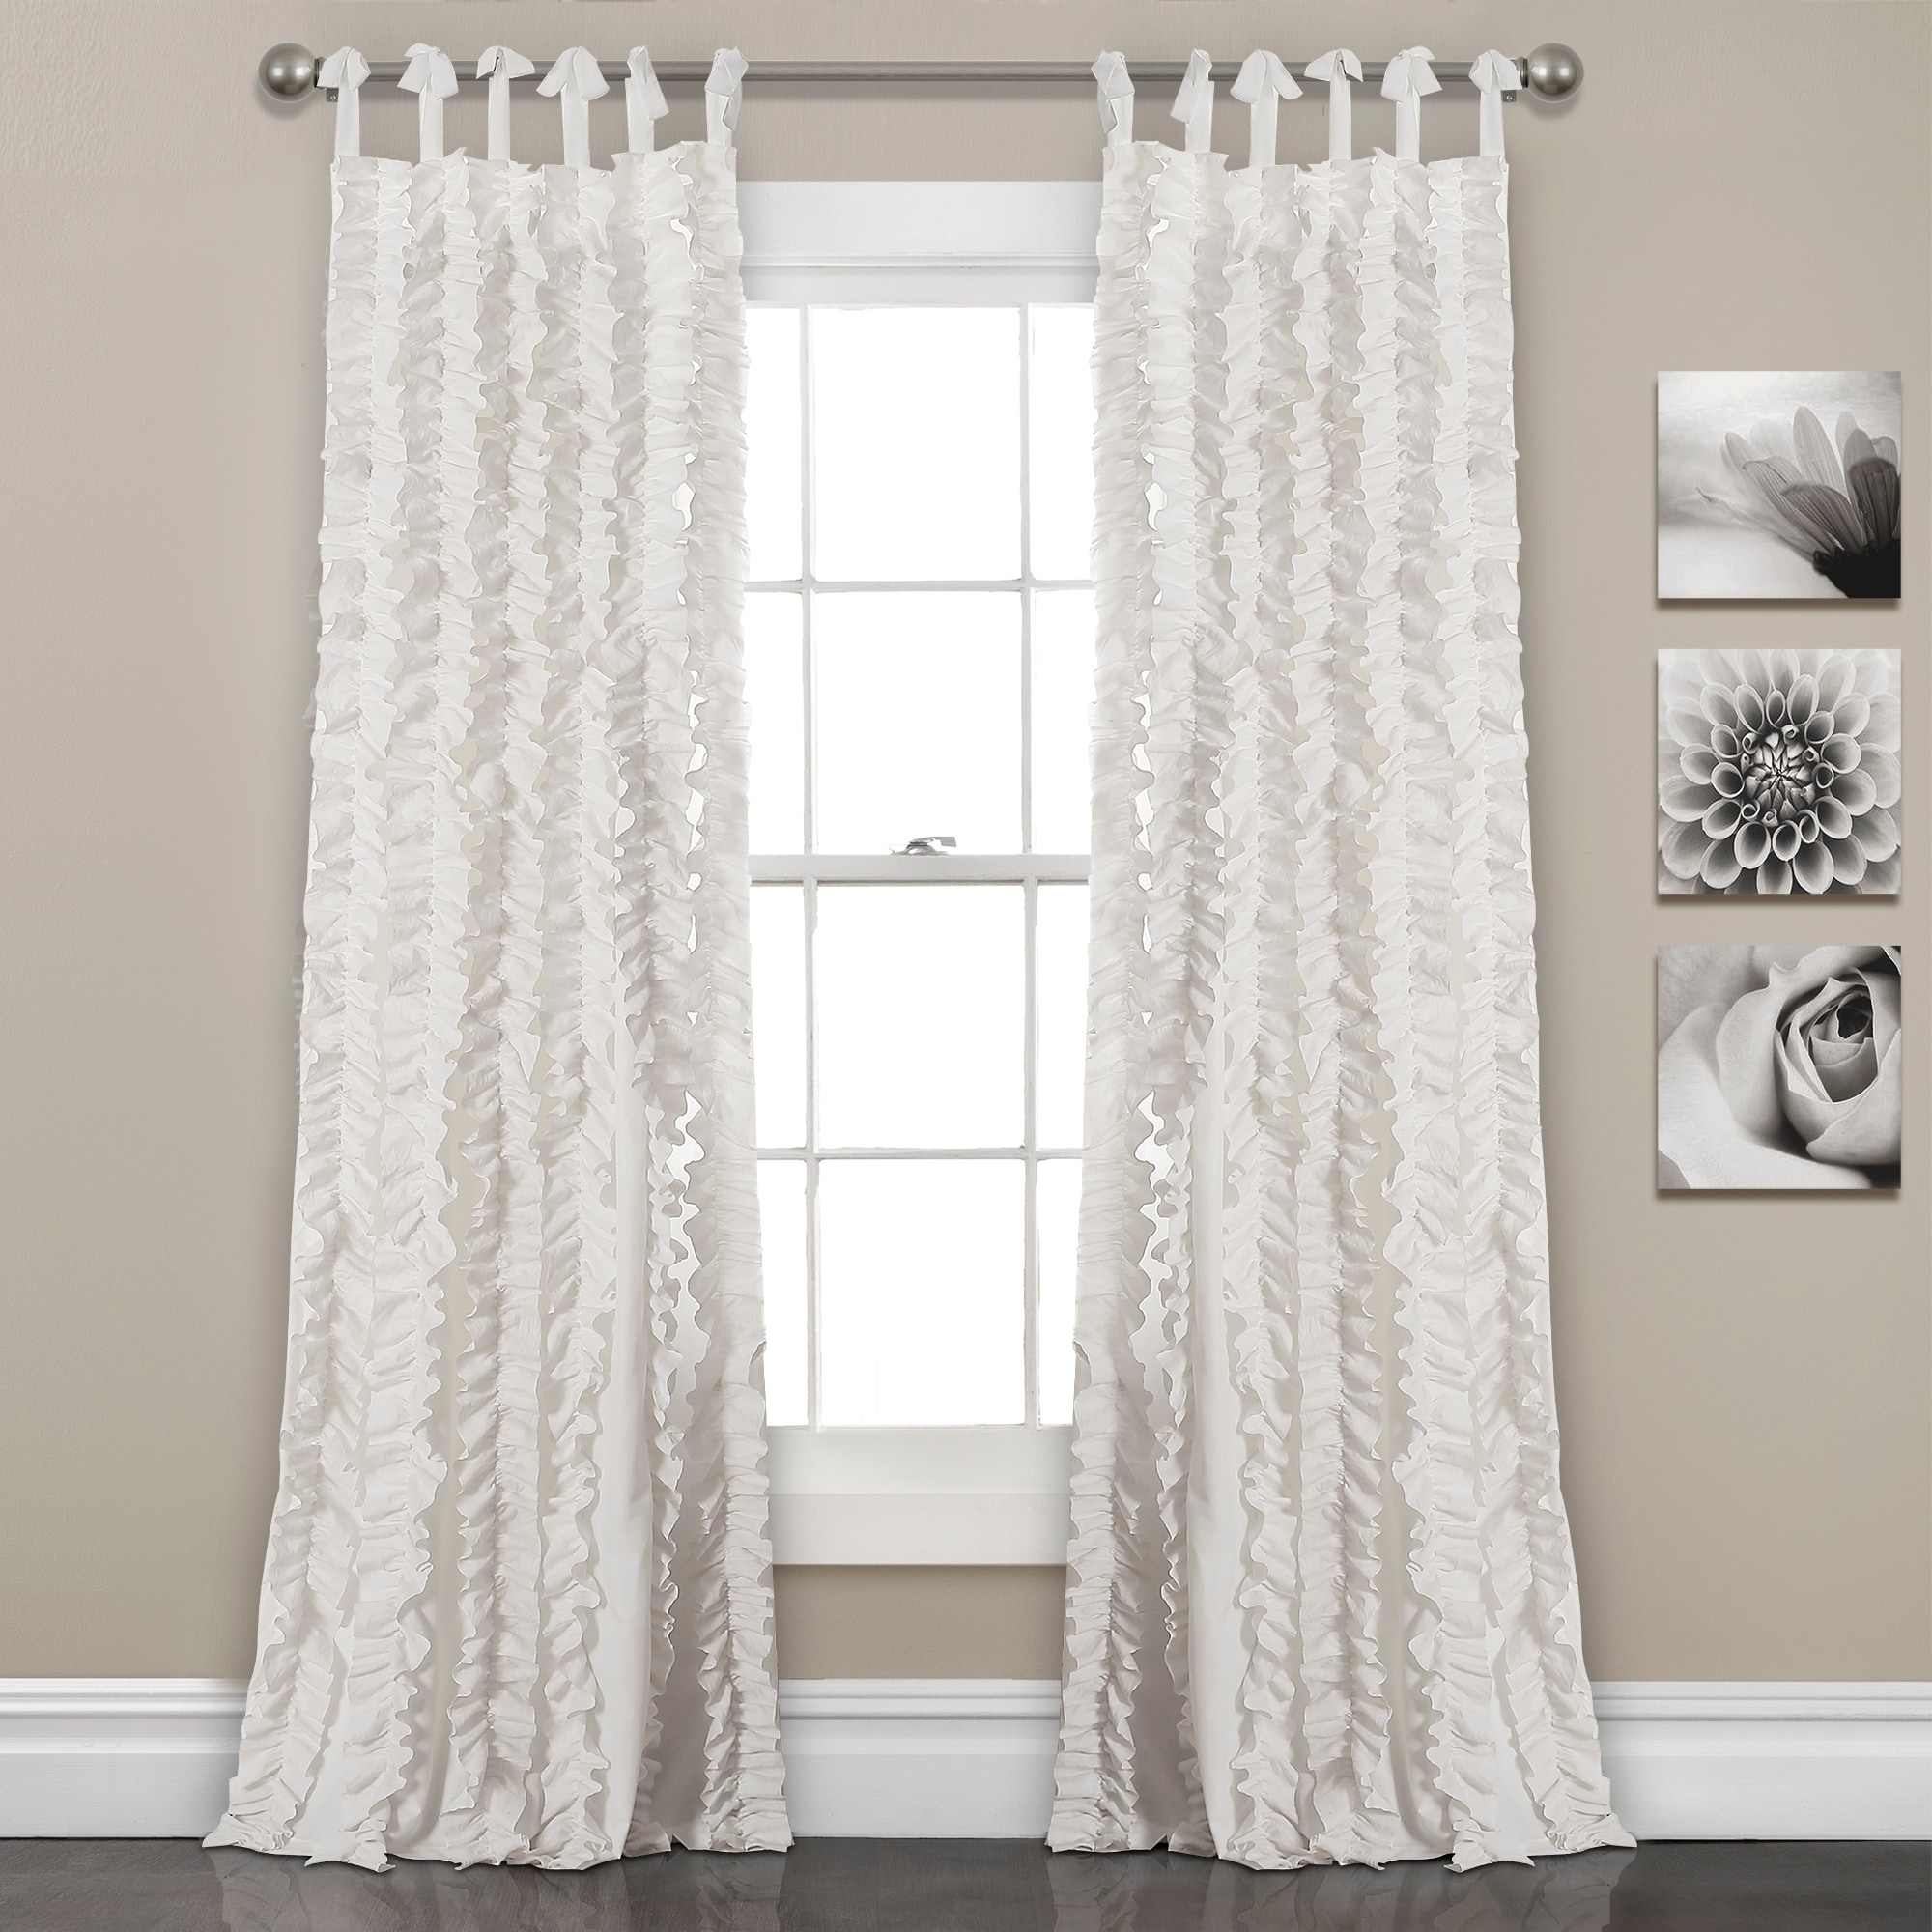 Ruffle Curtain Panel Lush Decor Sophia Ruffle Window Curtain Panel Pair 40